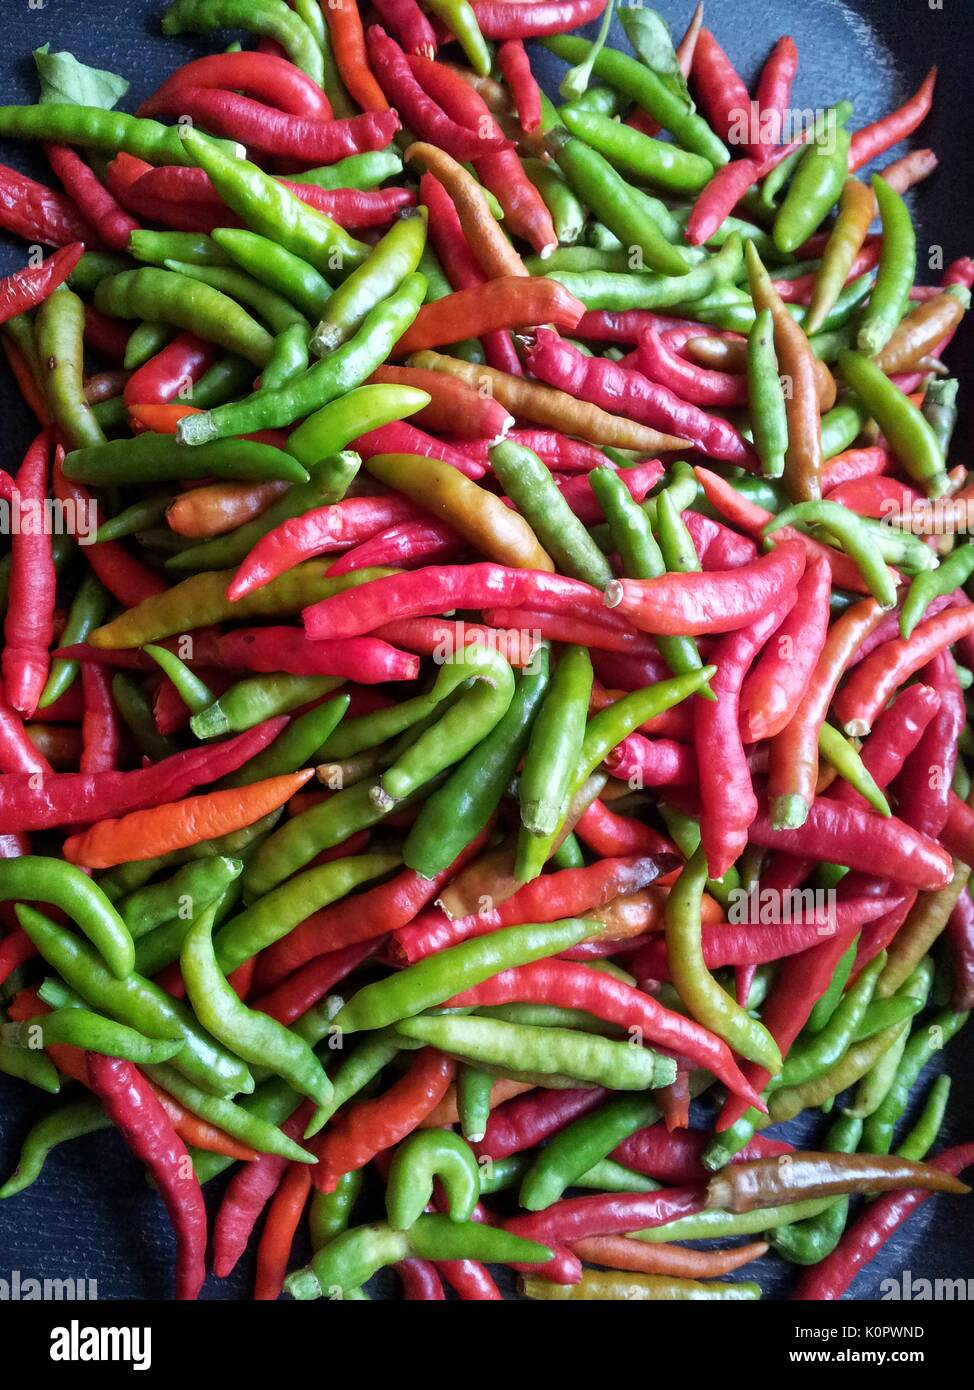 The fruit of the bird's eye chili is popularly used as a spice in South-east Asian cuisine. - Stock Image